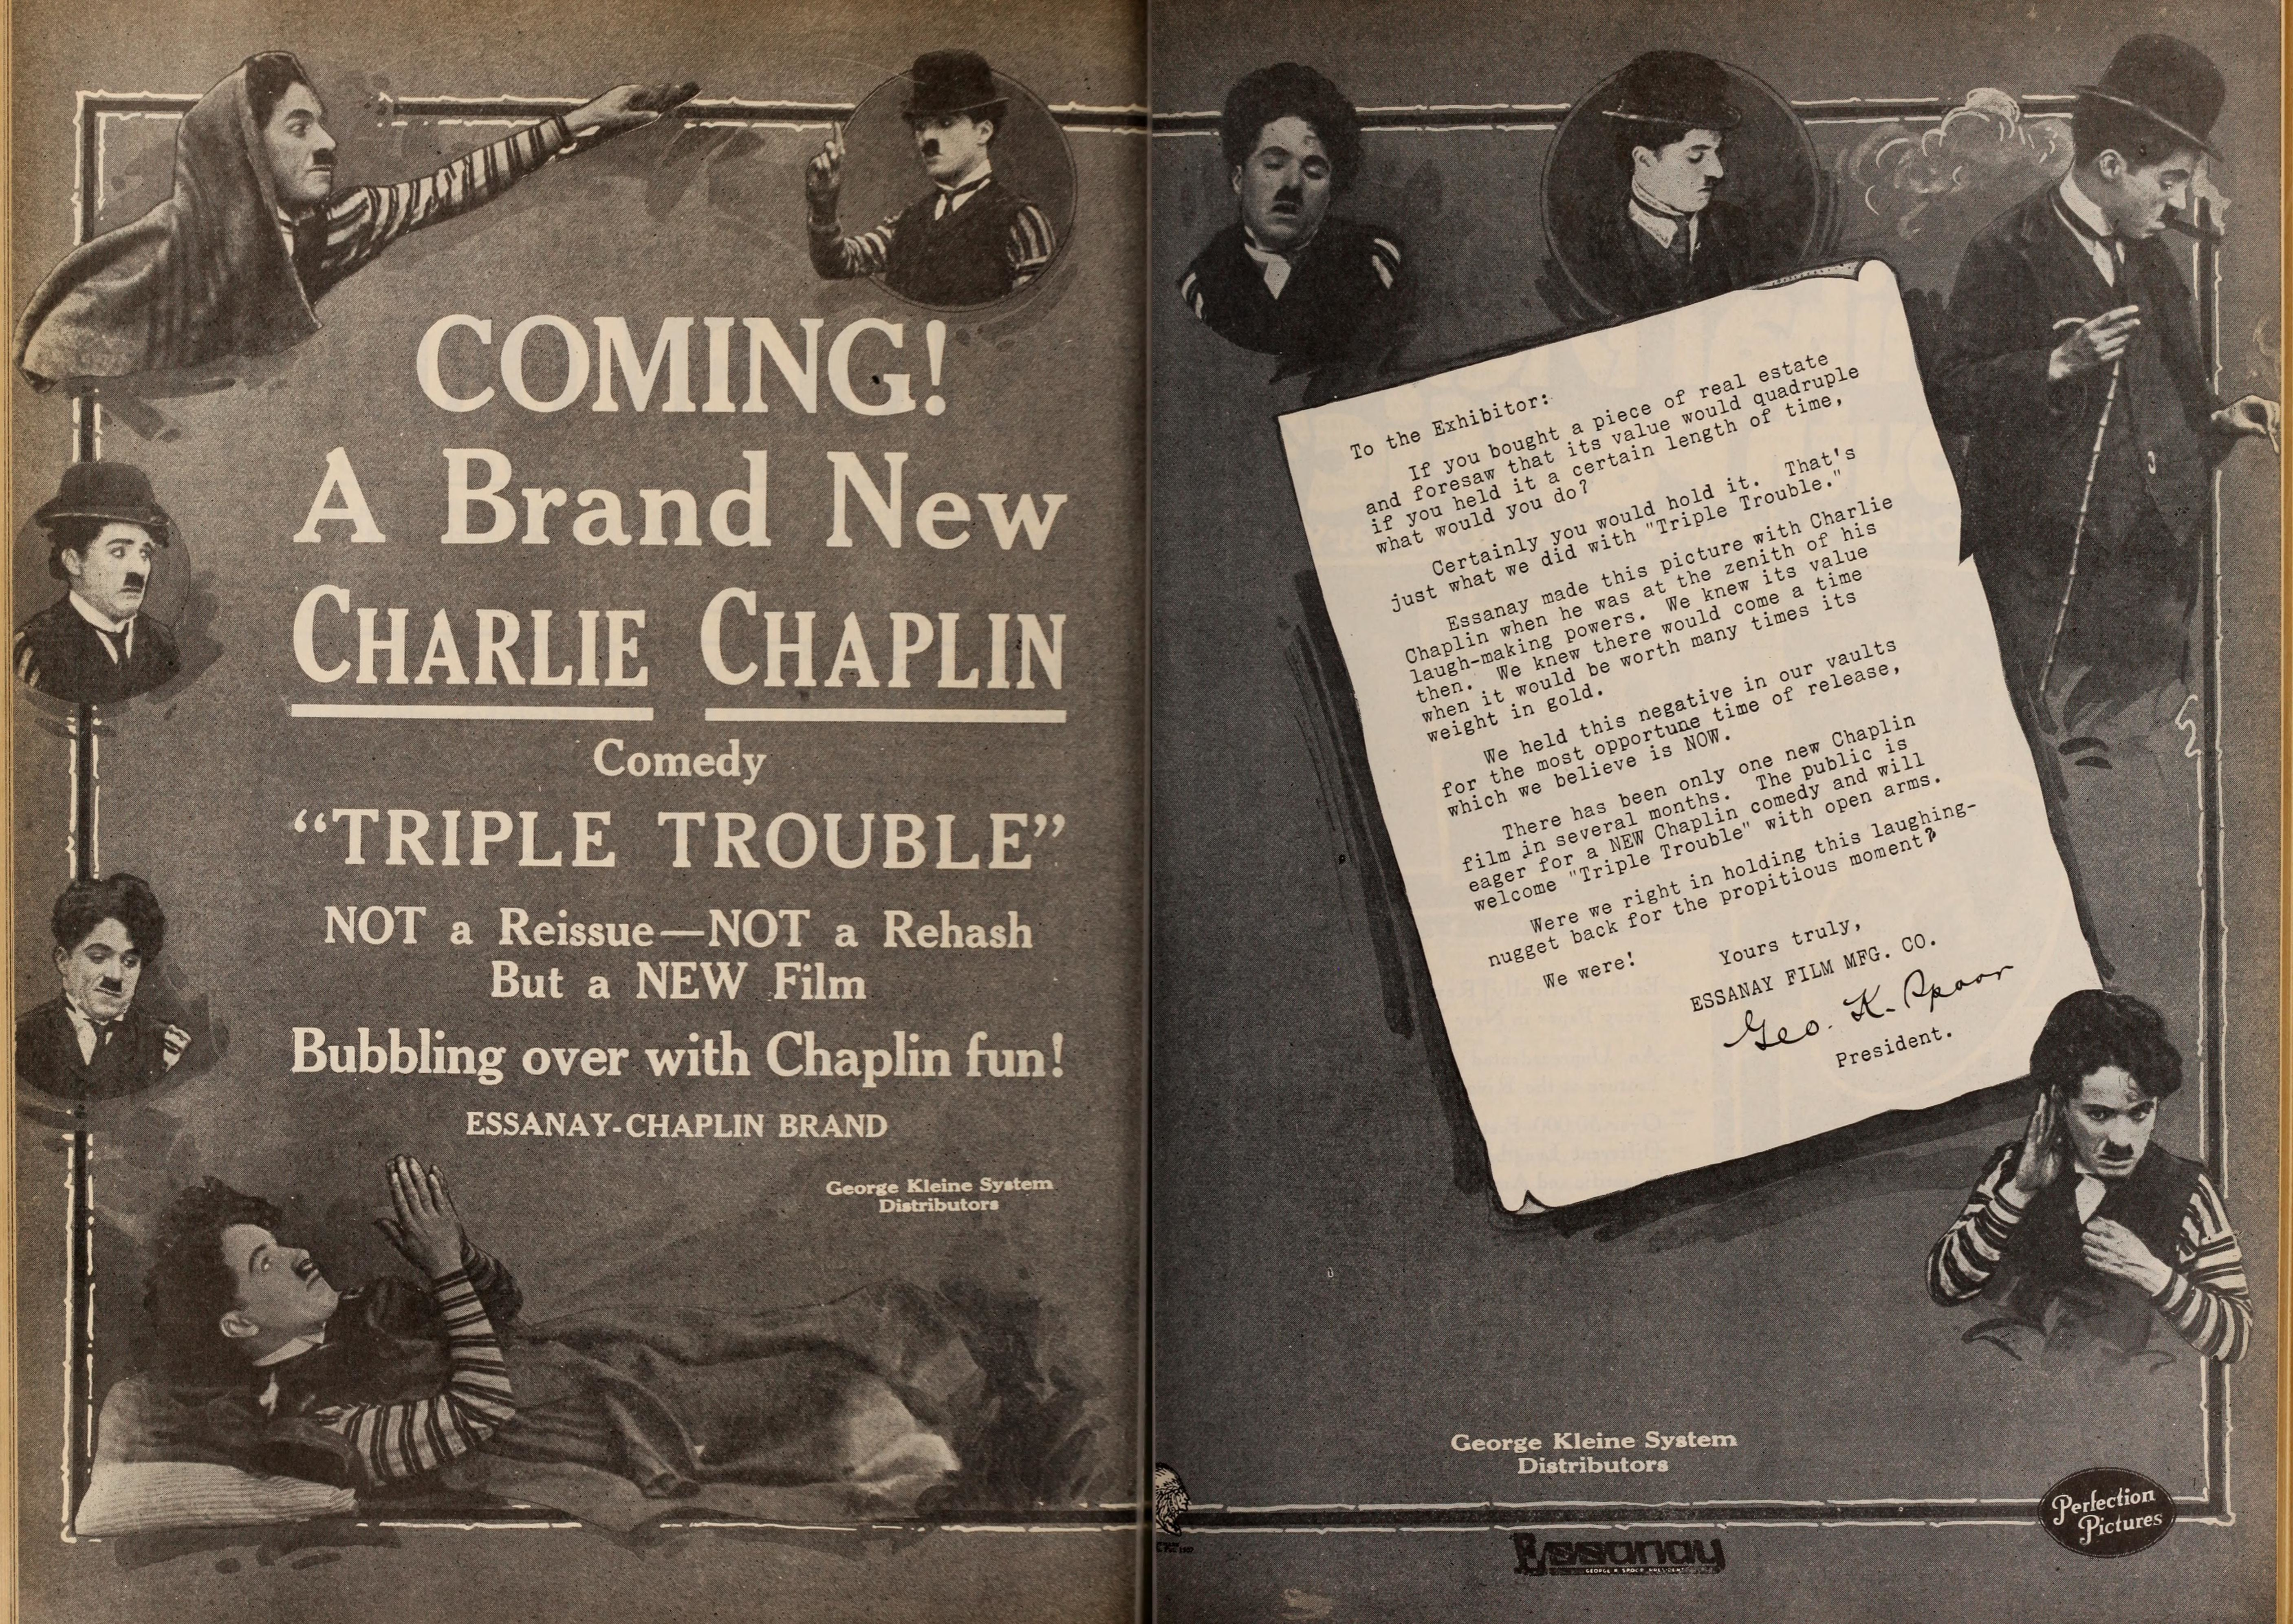 Triple Trouble advert, Motion Picture News magazine, August 3, 1918, p.704-705